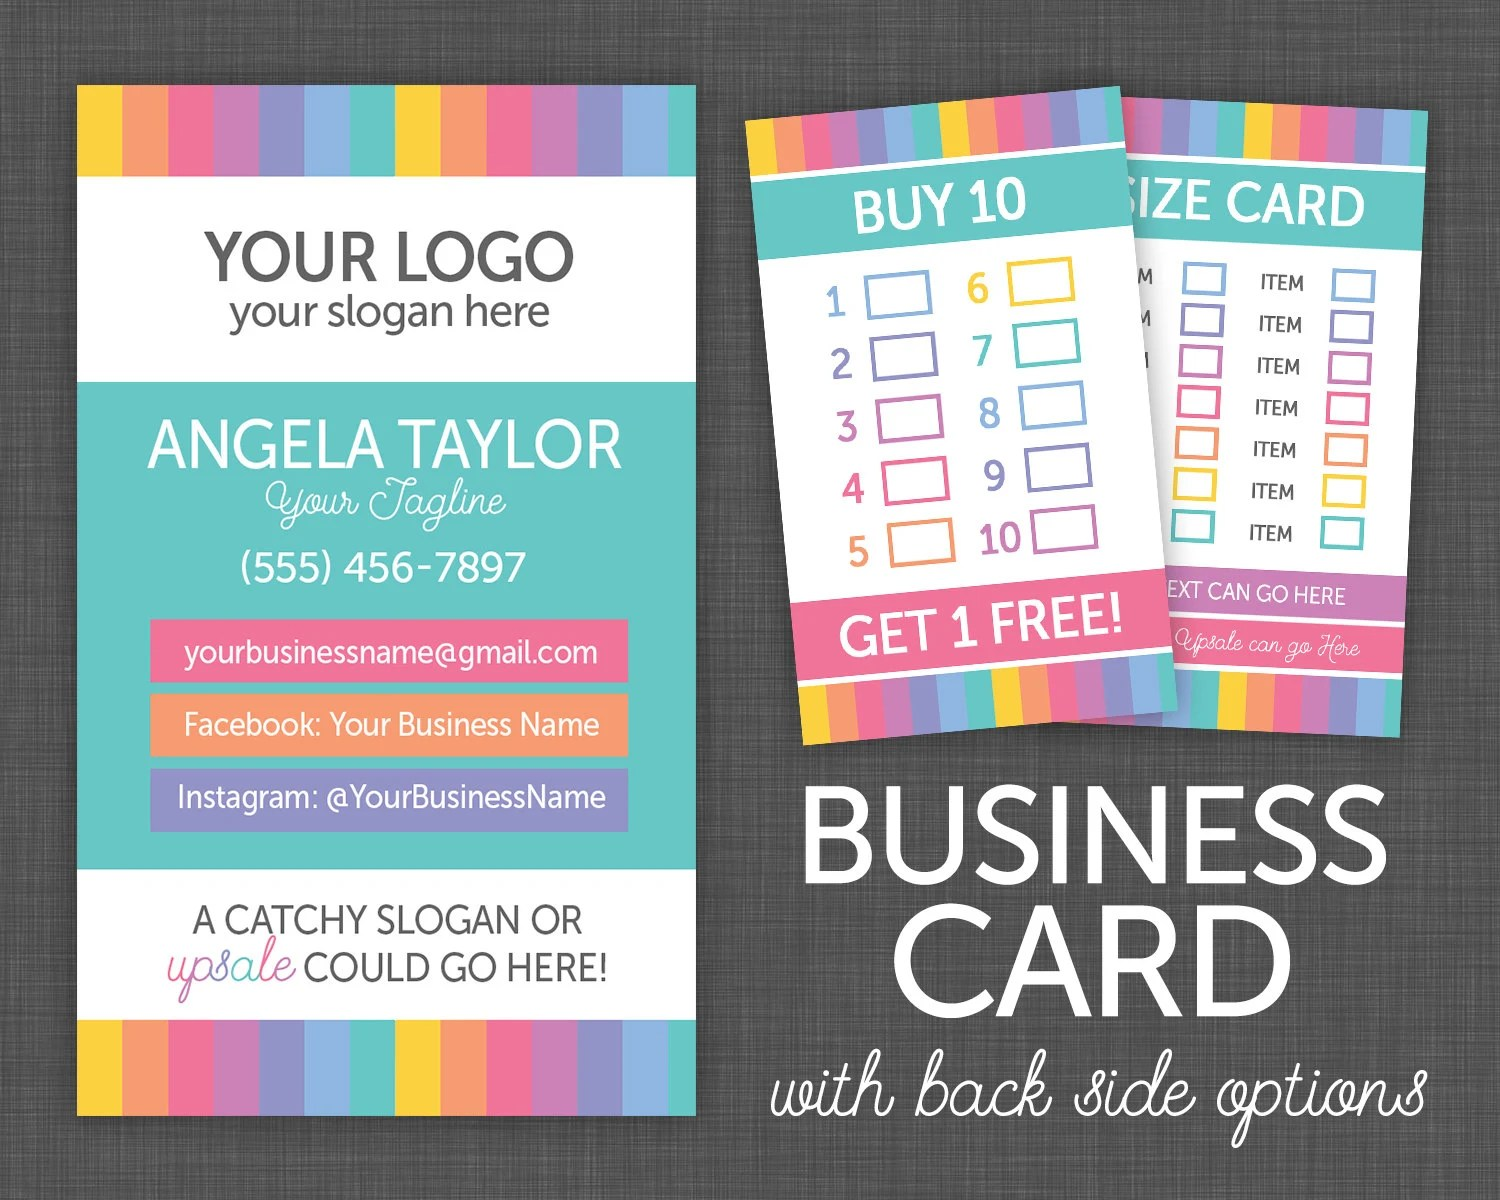 Business Cards My Size Card Punch Card My Size Card Etsy